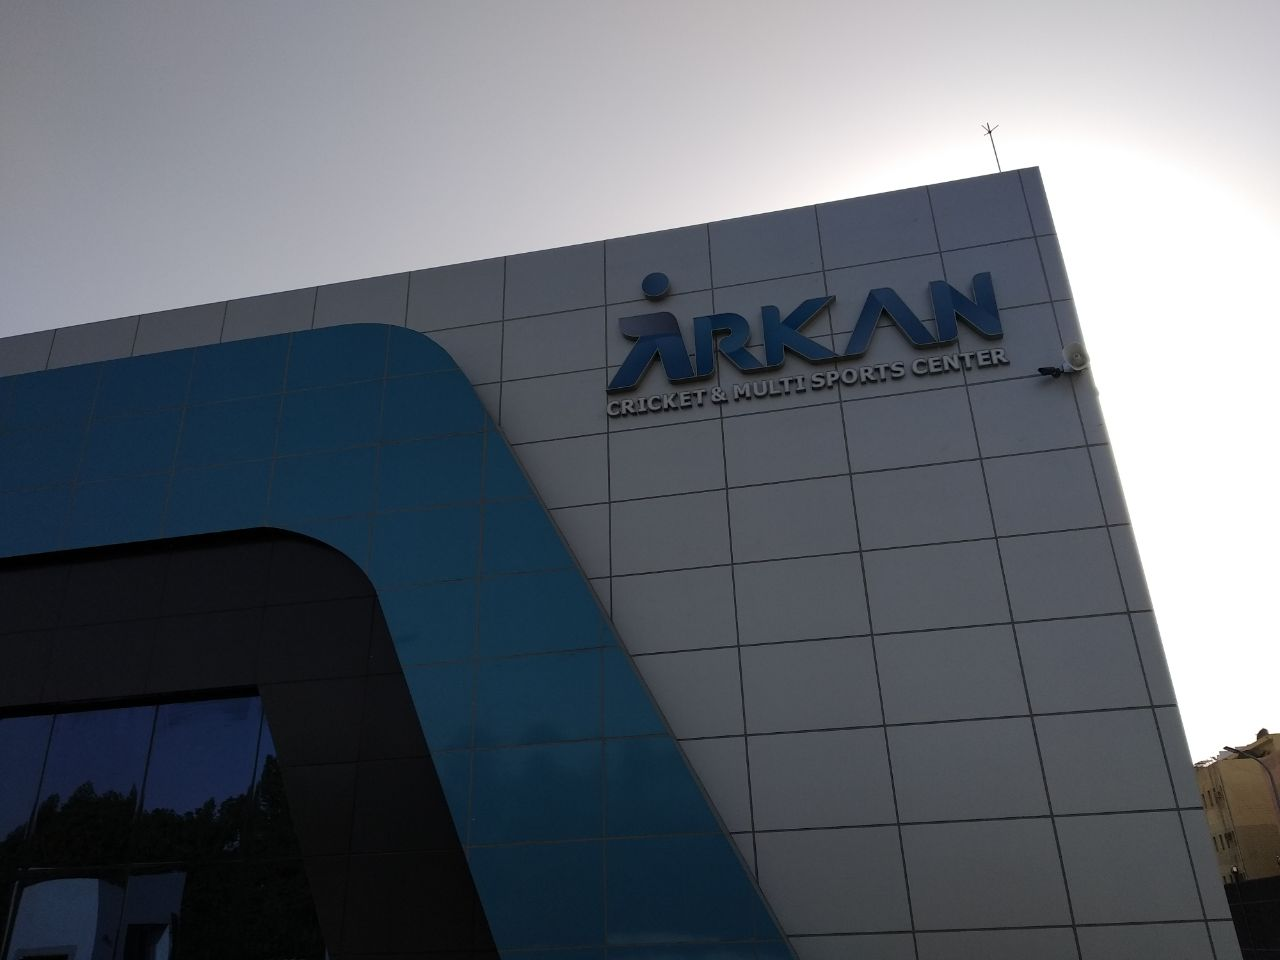 Arkan Cricket and Multi Sports Center